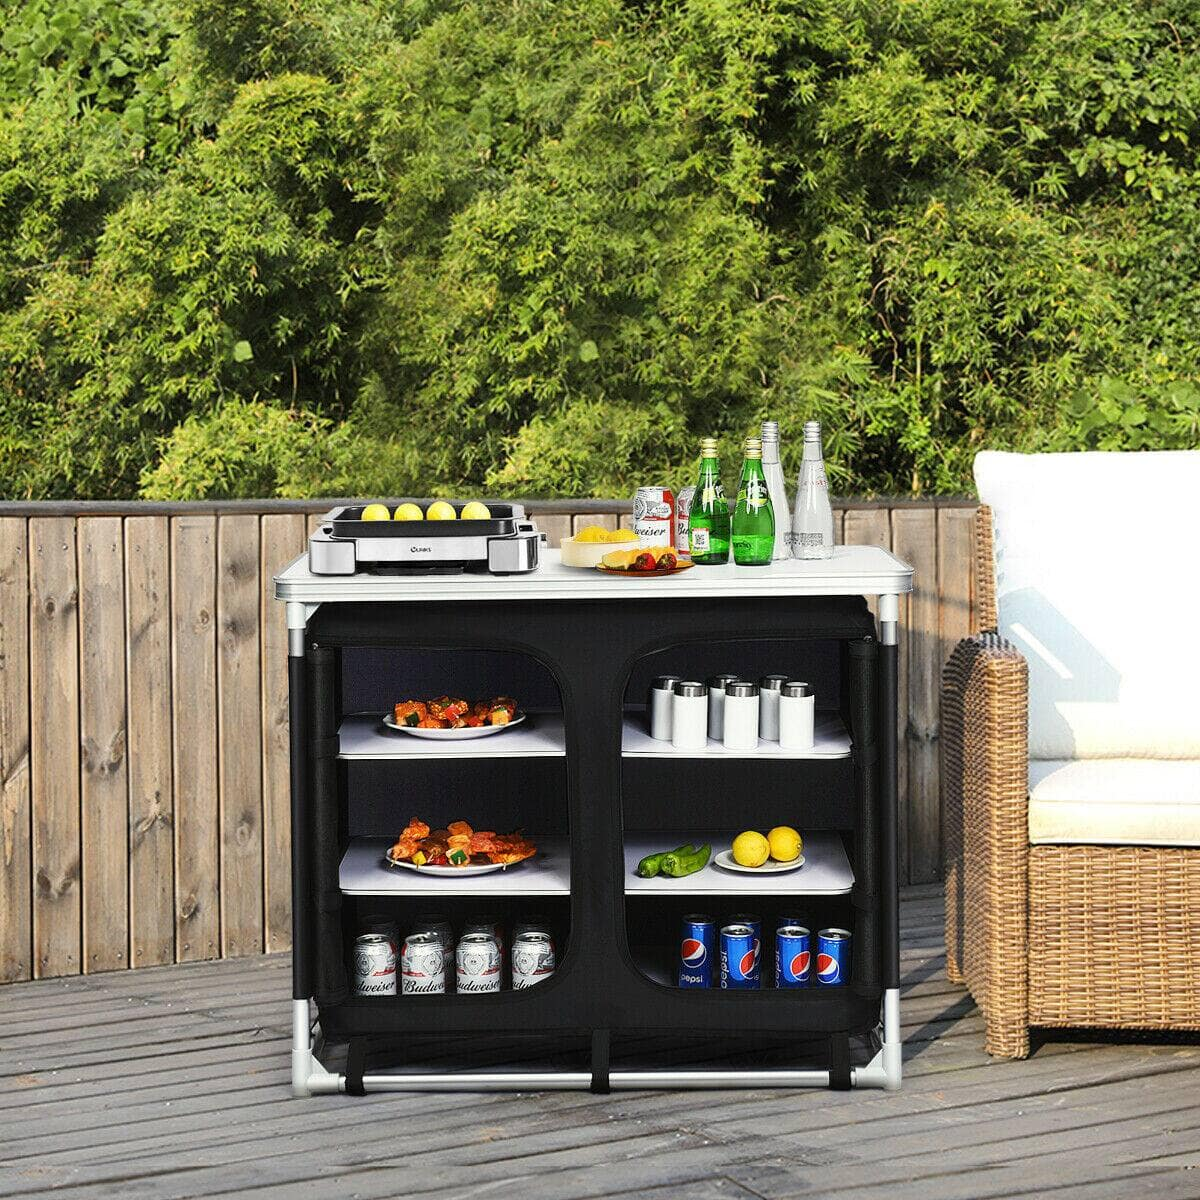 Costway Outdoor Camping Cooking Table with Storage Organizer $89.95 + Free Shipping